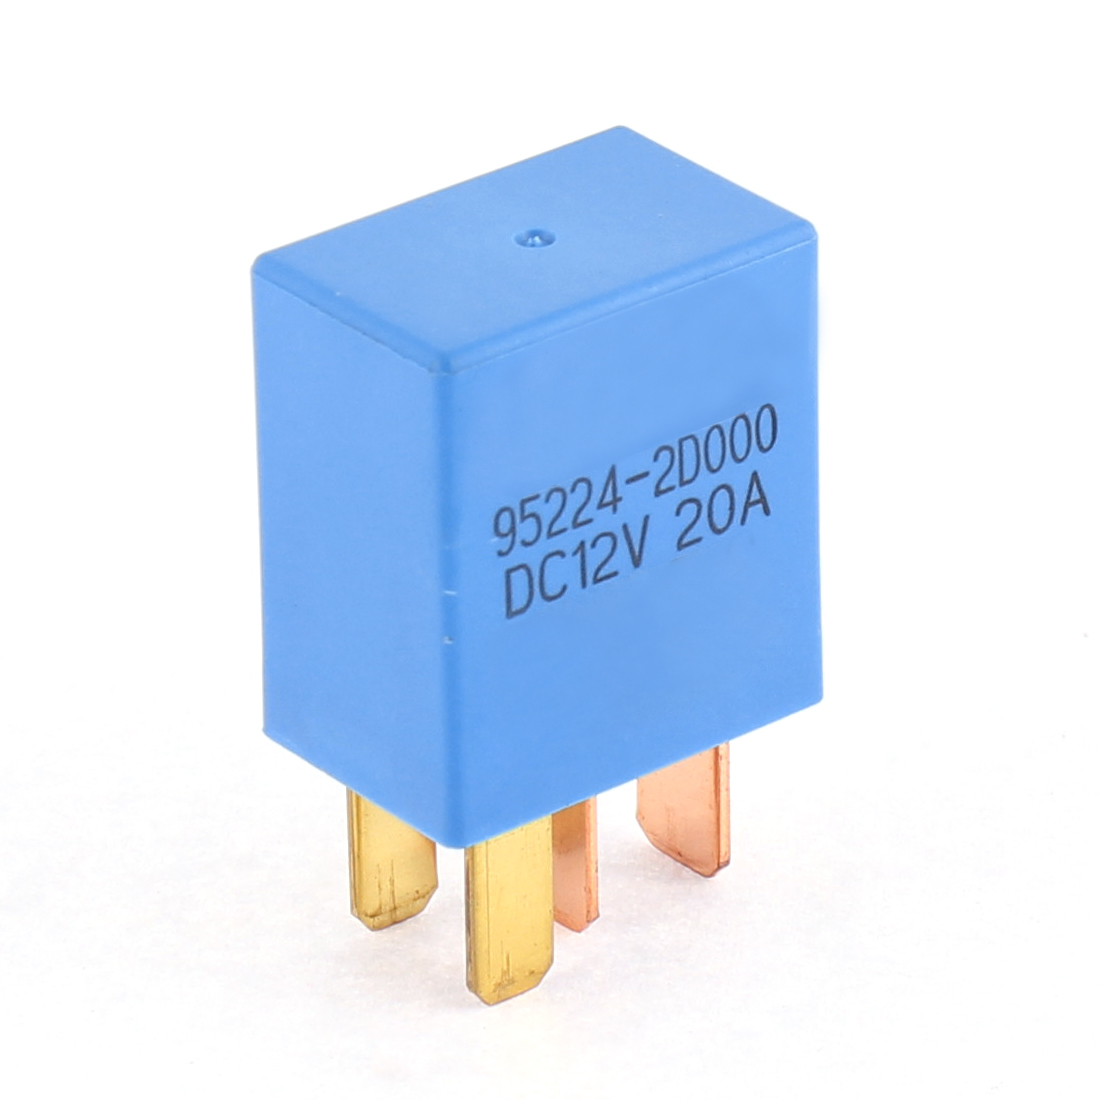 DC 12V 20A 4 Terminals Auto Car Vehicle Truck Changeover Power Relay